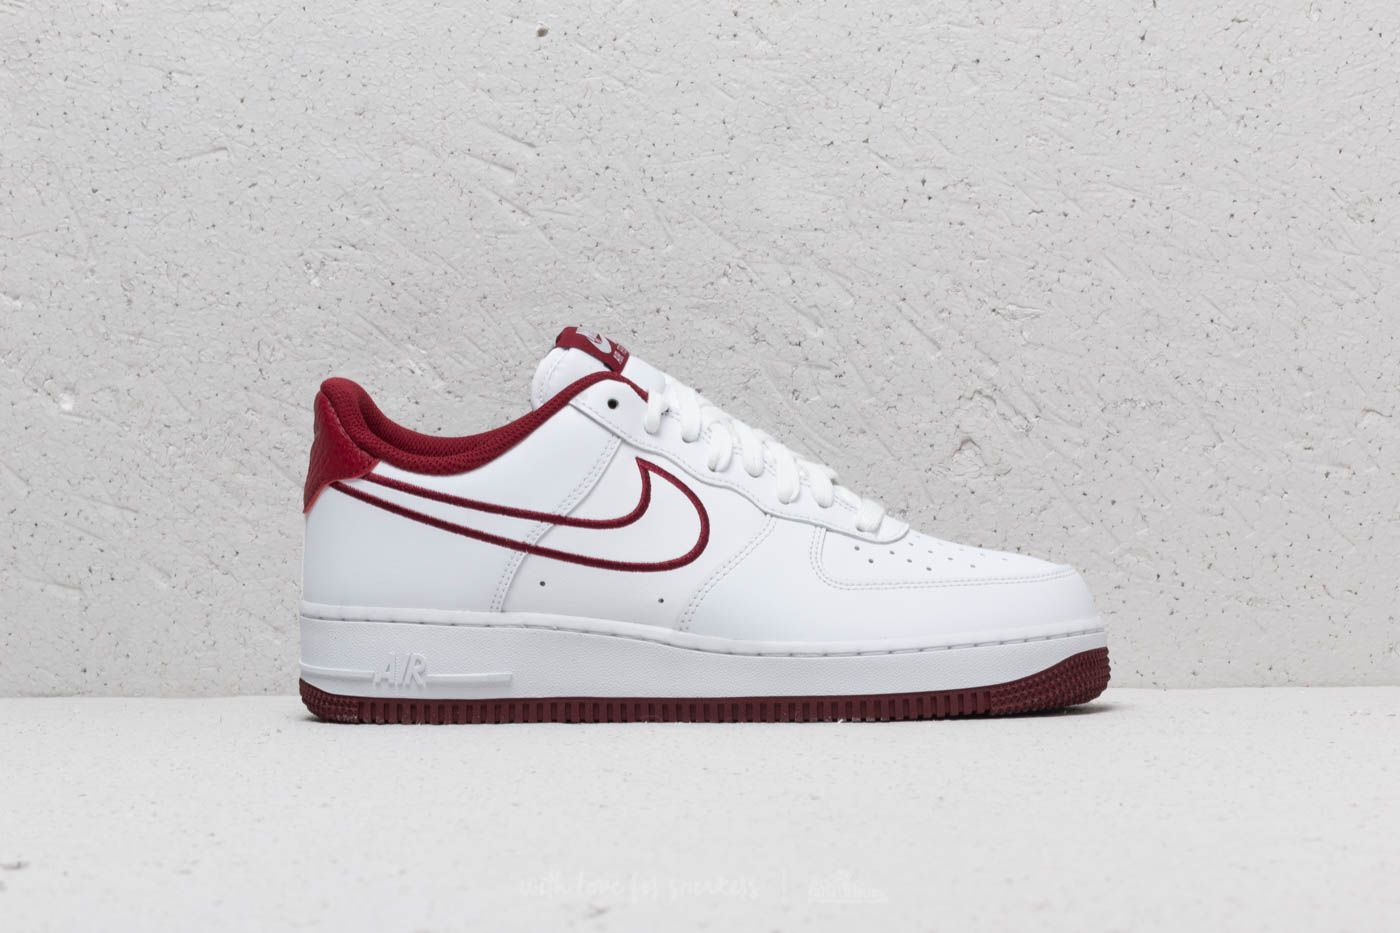 f4f25cd04d3 Nike Air Force 1  07 Leather White  Team Red in 2019